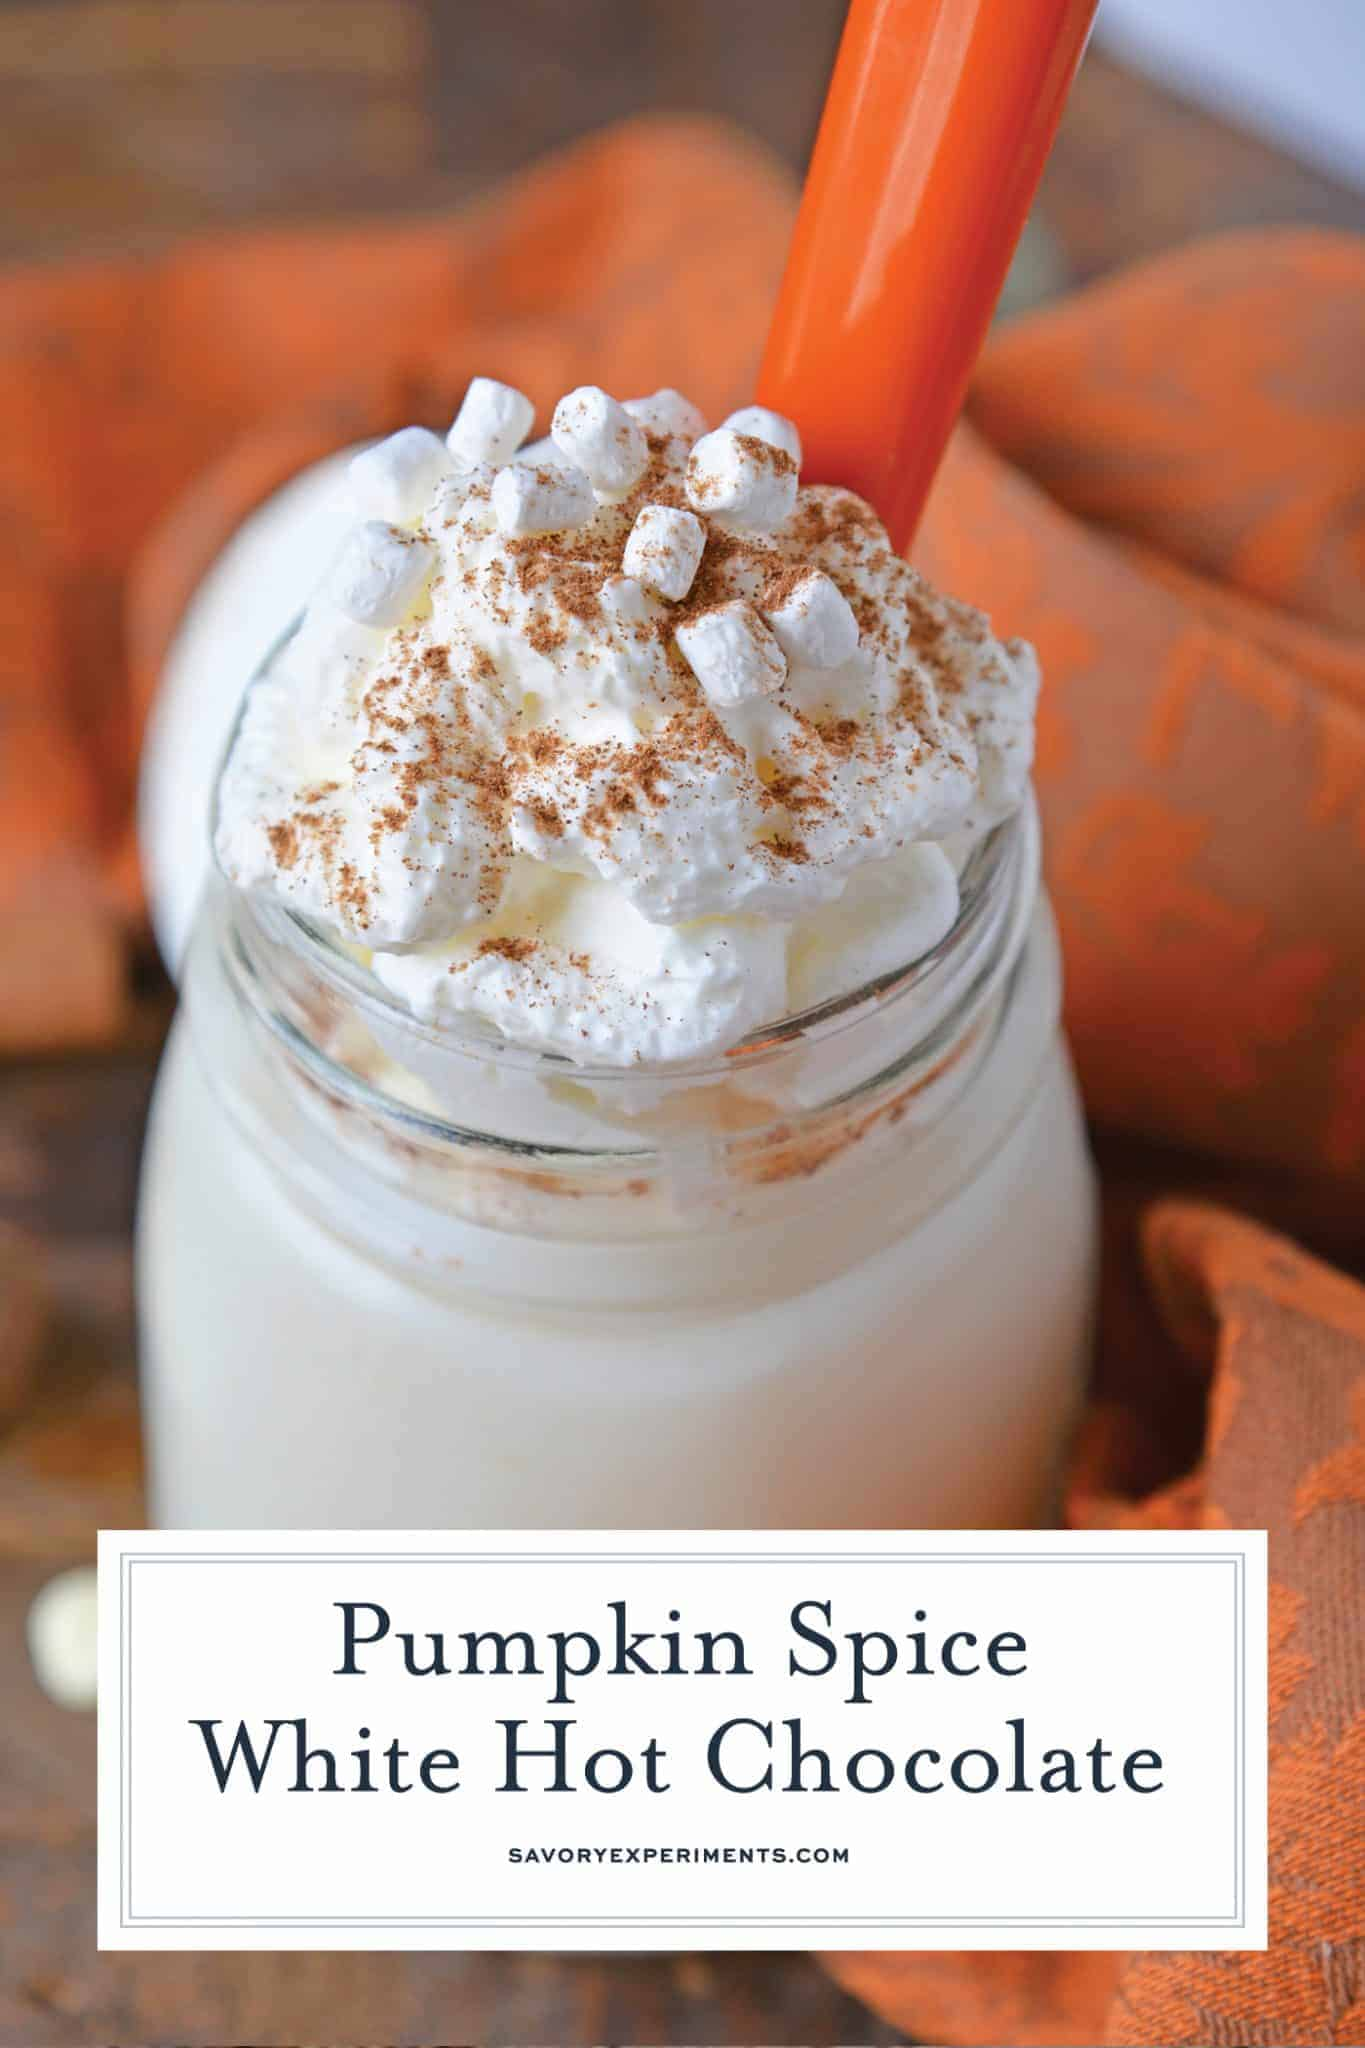 Pumpkin Spice Hot Chocolate is the perfect combination of white hot chocolate and pumpkin pie spice. The best hot chocolate recipe for fall! #pumpkinspicehotchocolate #hotchocolaterecipes #pumpkinpiespice www.savoryexperiments.com